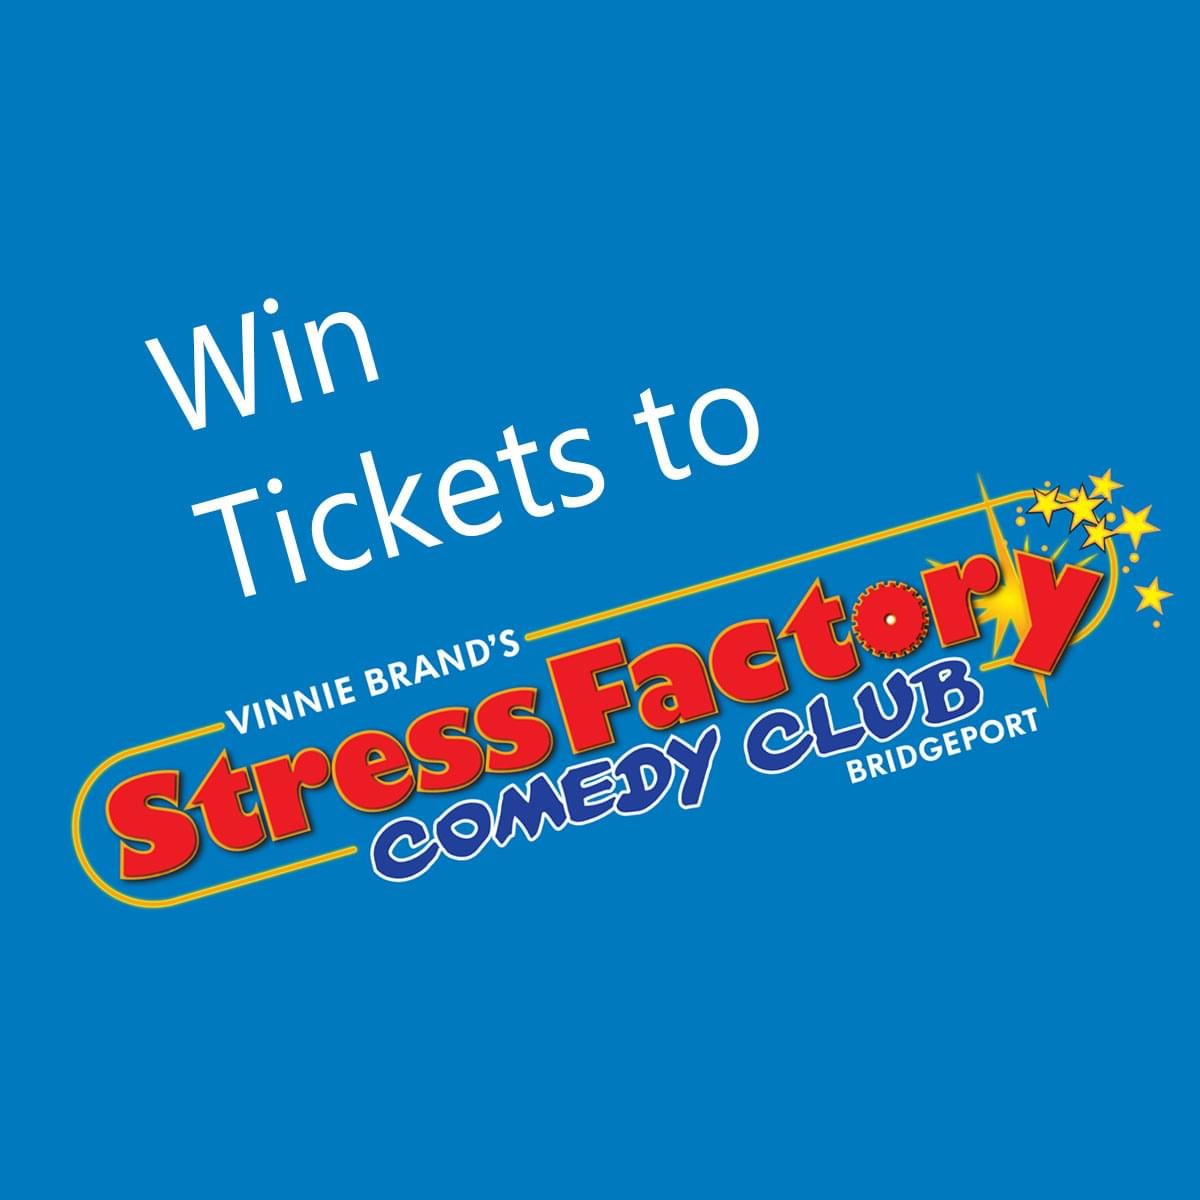 Enter to win tickets to Jackie Fabulous at the Stress Factory in Bridgeport